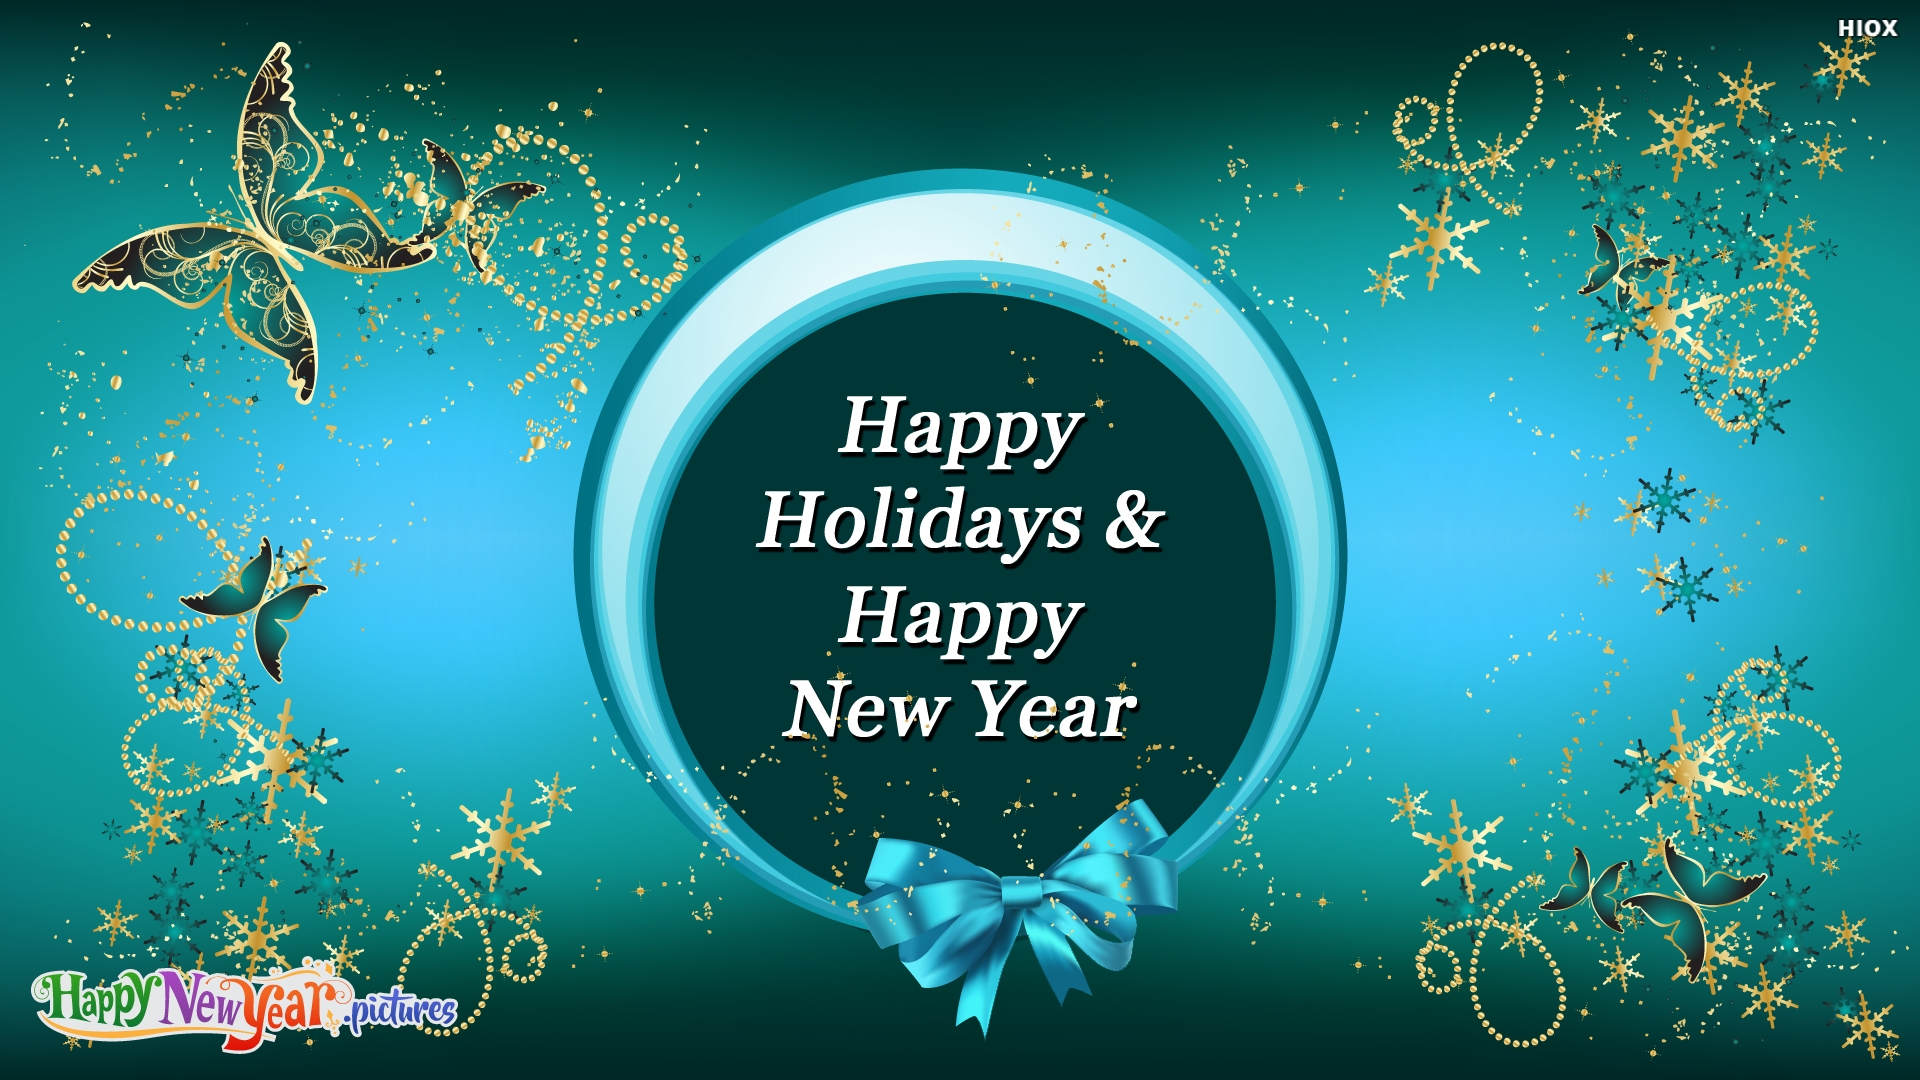 Happy Holidays and Happy New Year Wishes To One and All